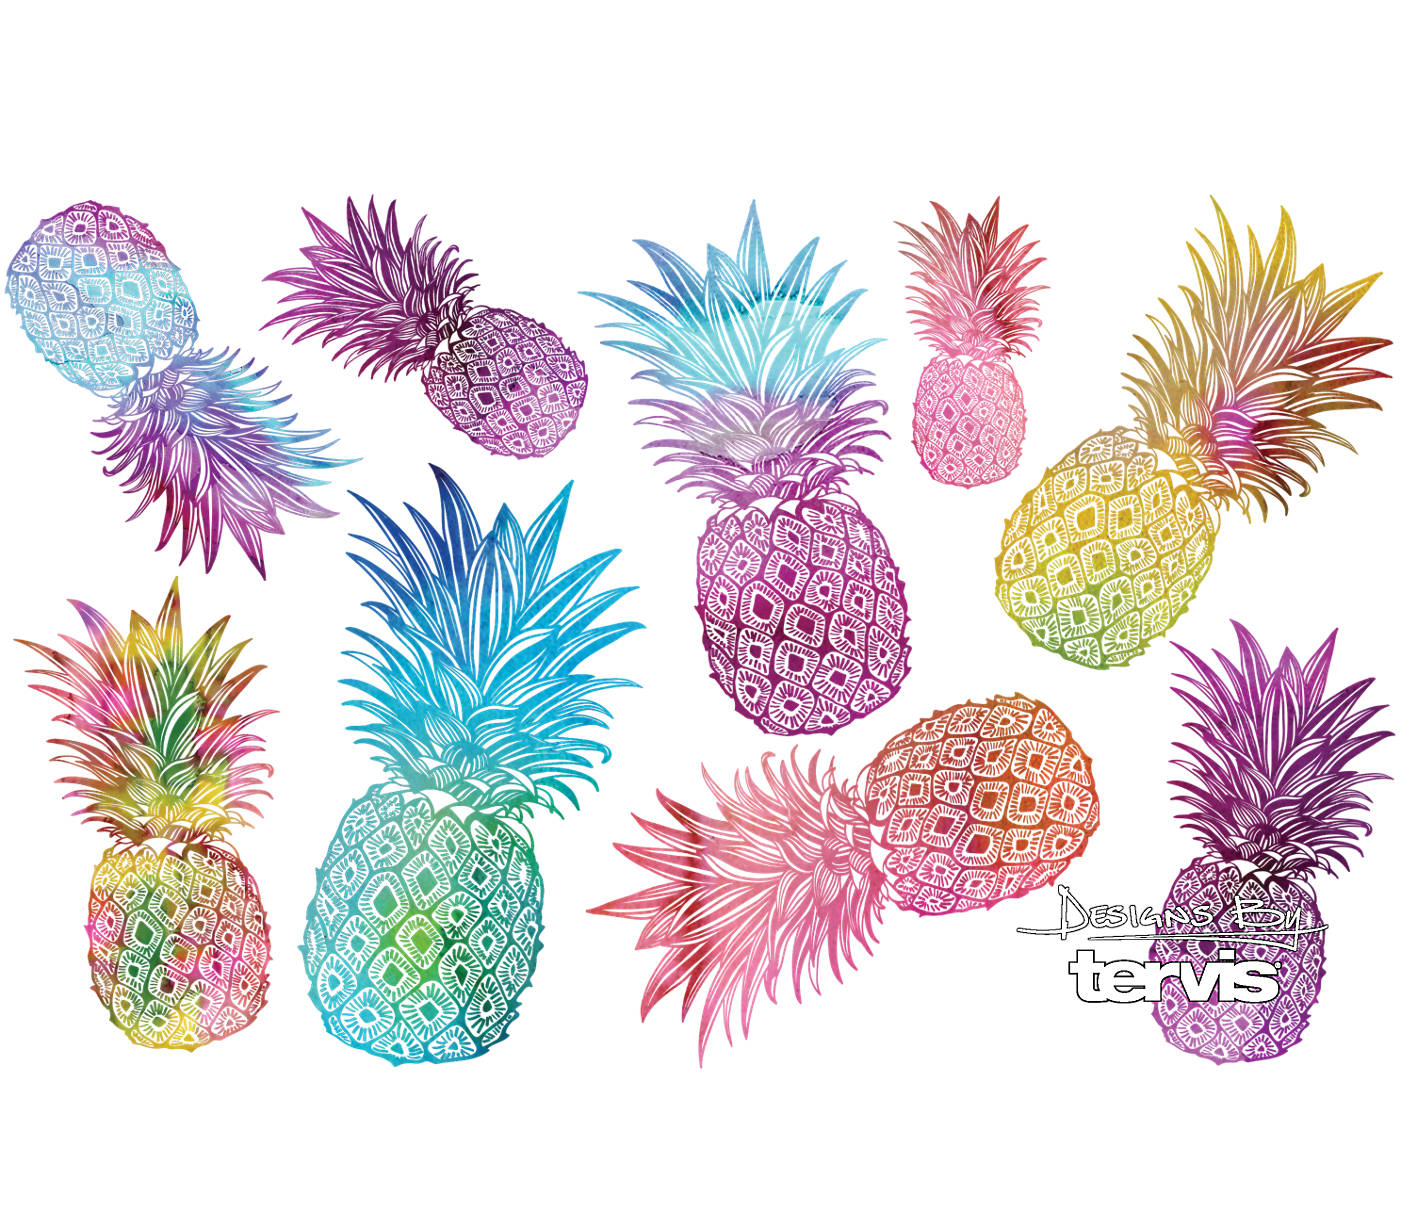 a4f668e4834 Watercolor Pineapples Stainless Steel With Hammer Lid   Tervis ...